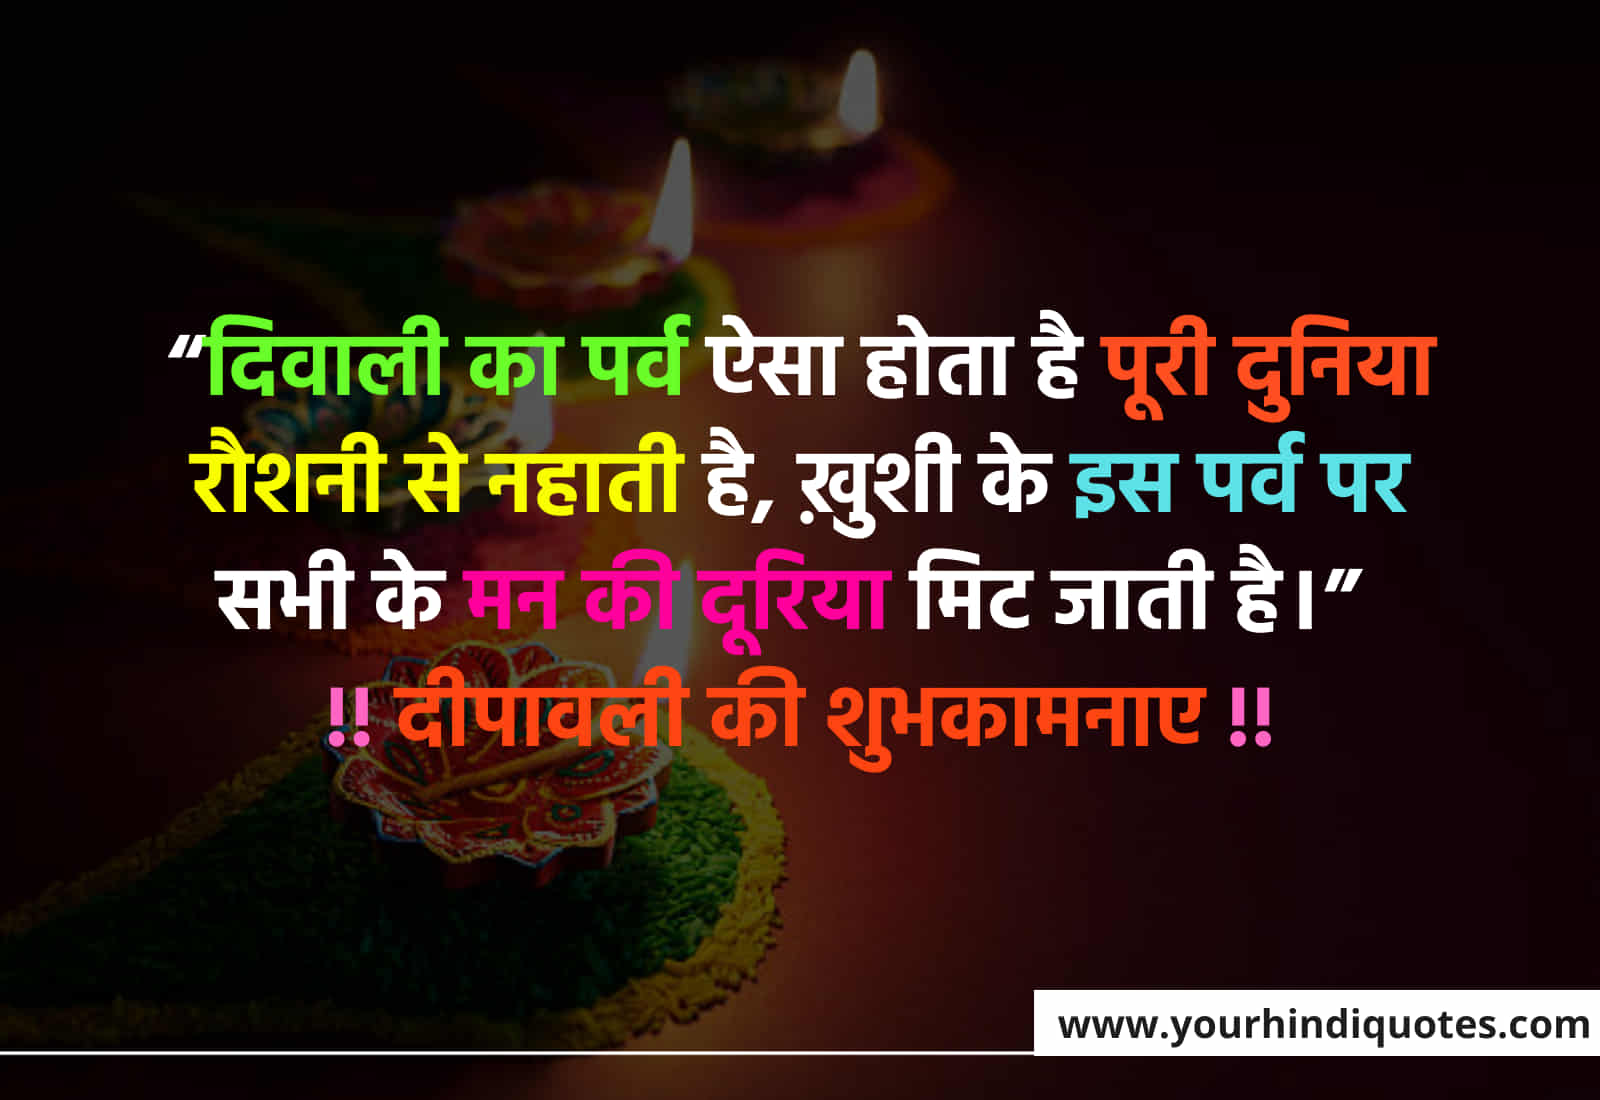 Hindi Diwali Quotes For Friends